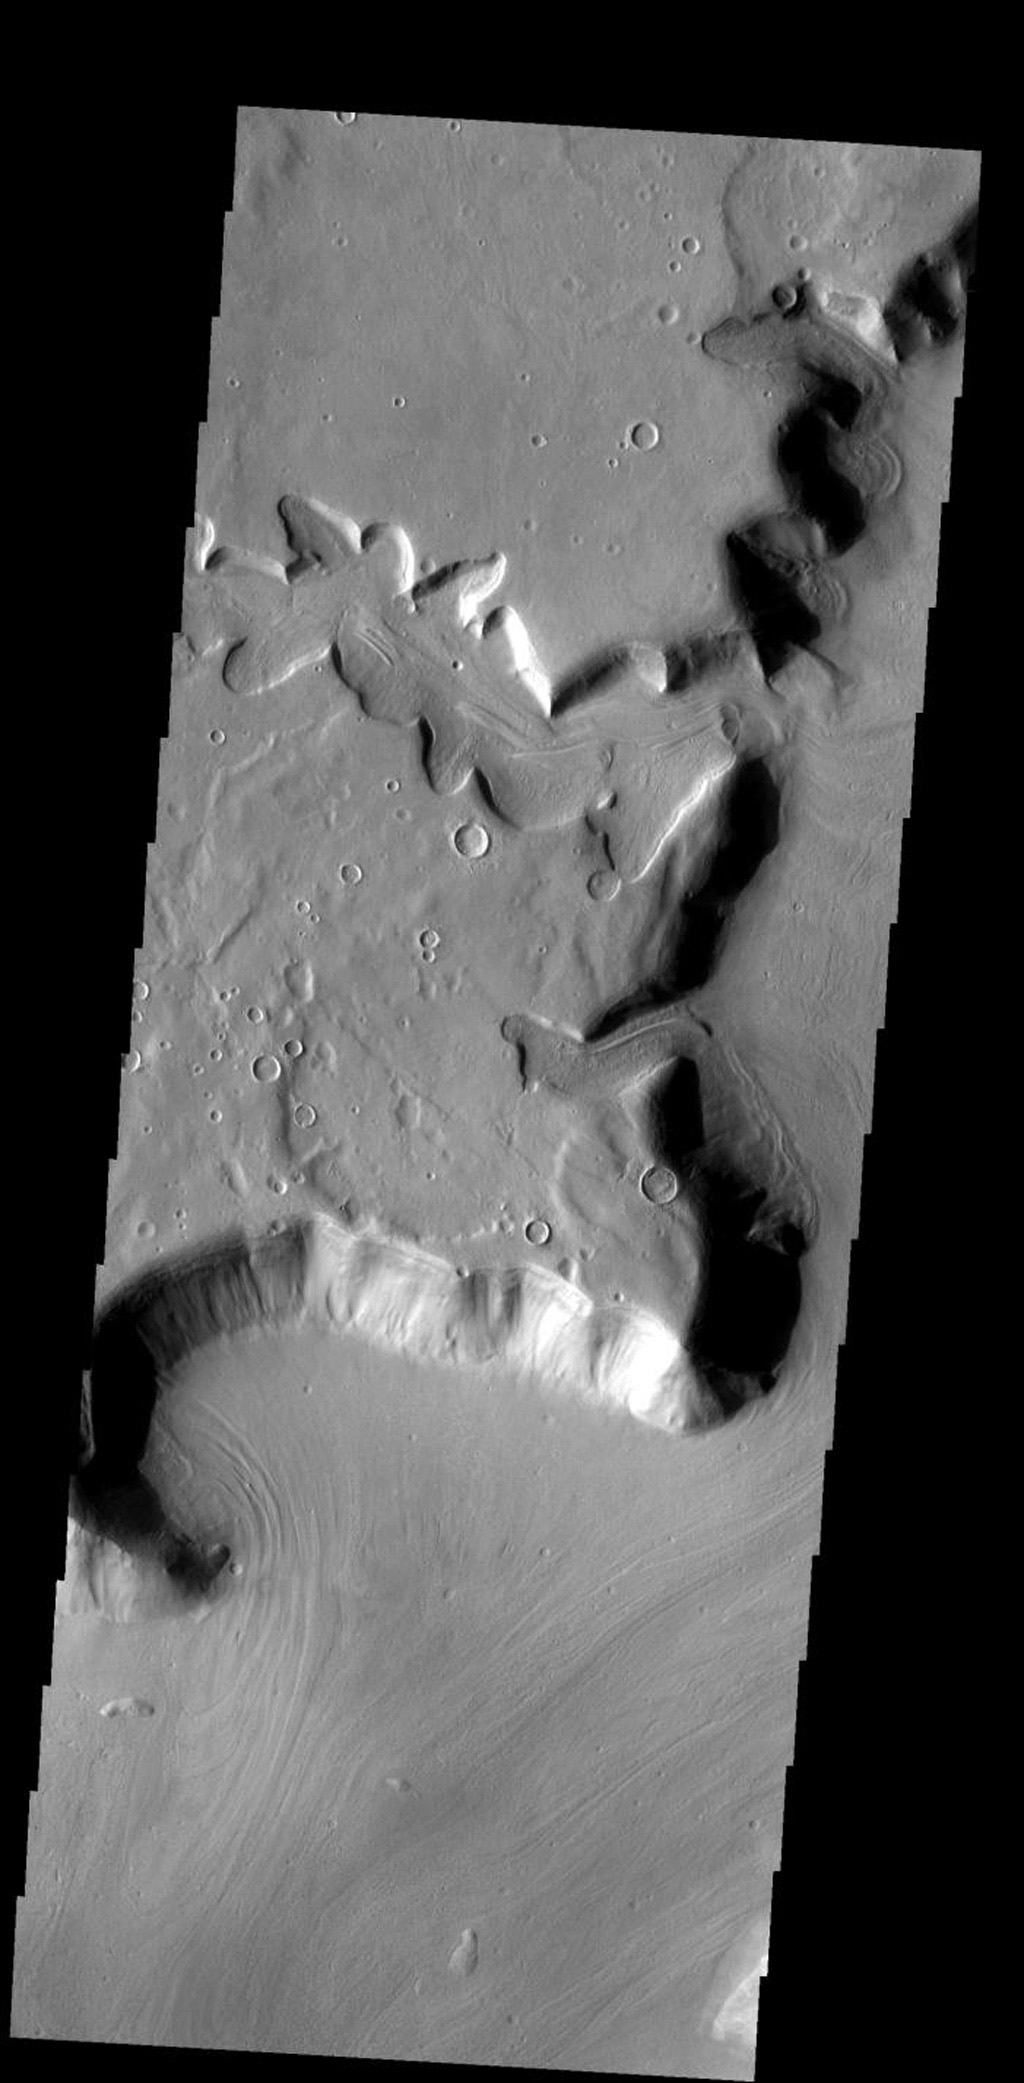 This interesting tributary channel is located in the Deuteronilus region of Mars on Mars as seen by NASA's Mars Odyssey spacecraft.